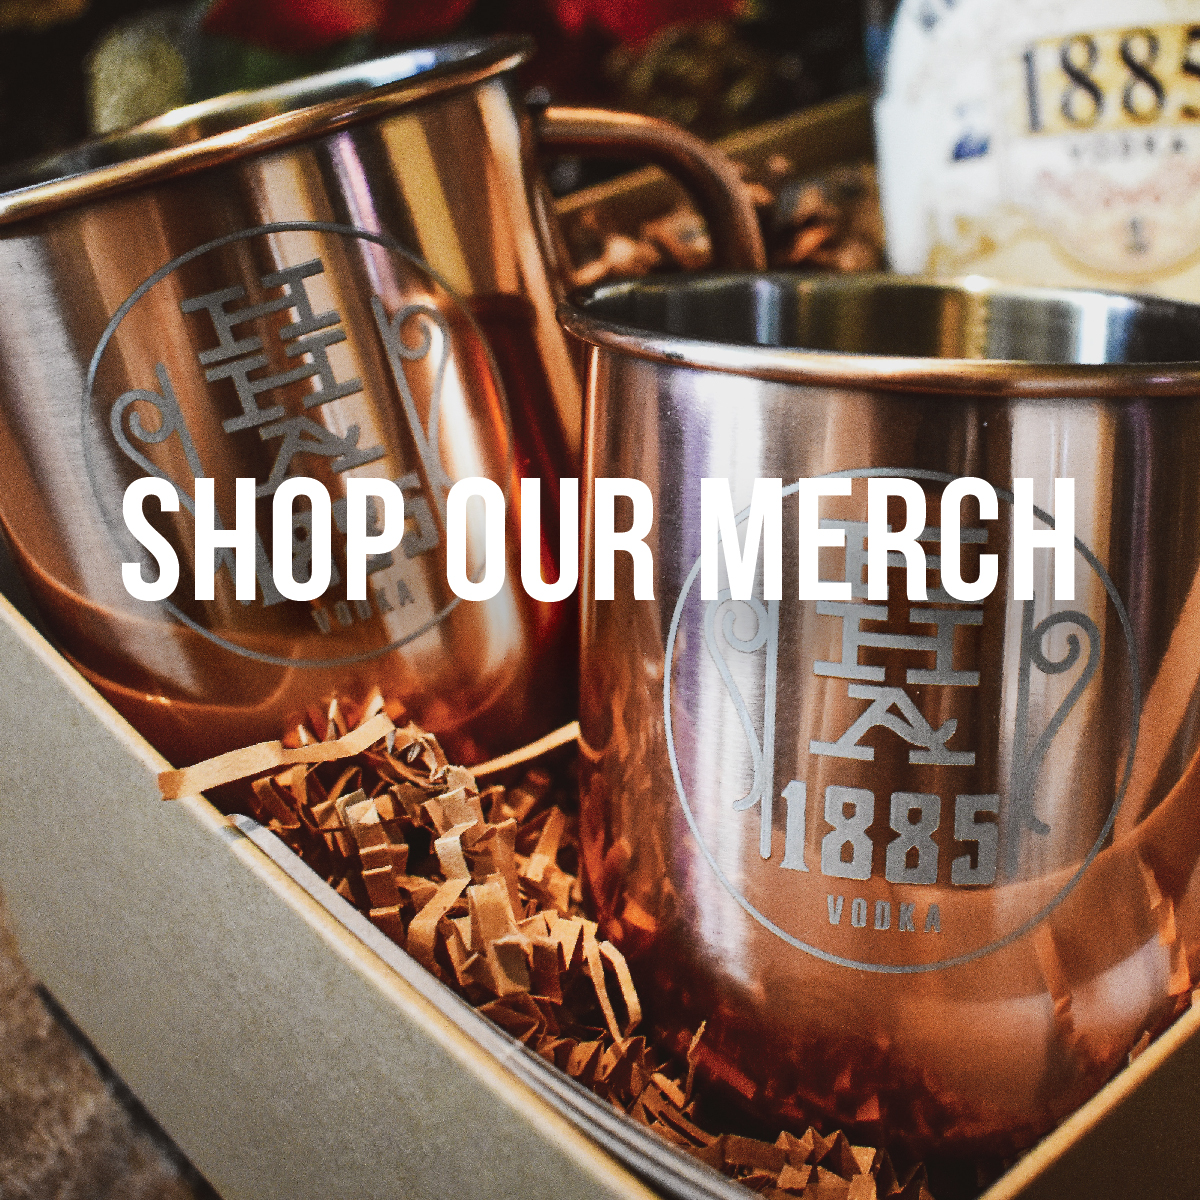 Hells half acre merchandise page